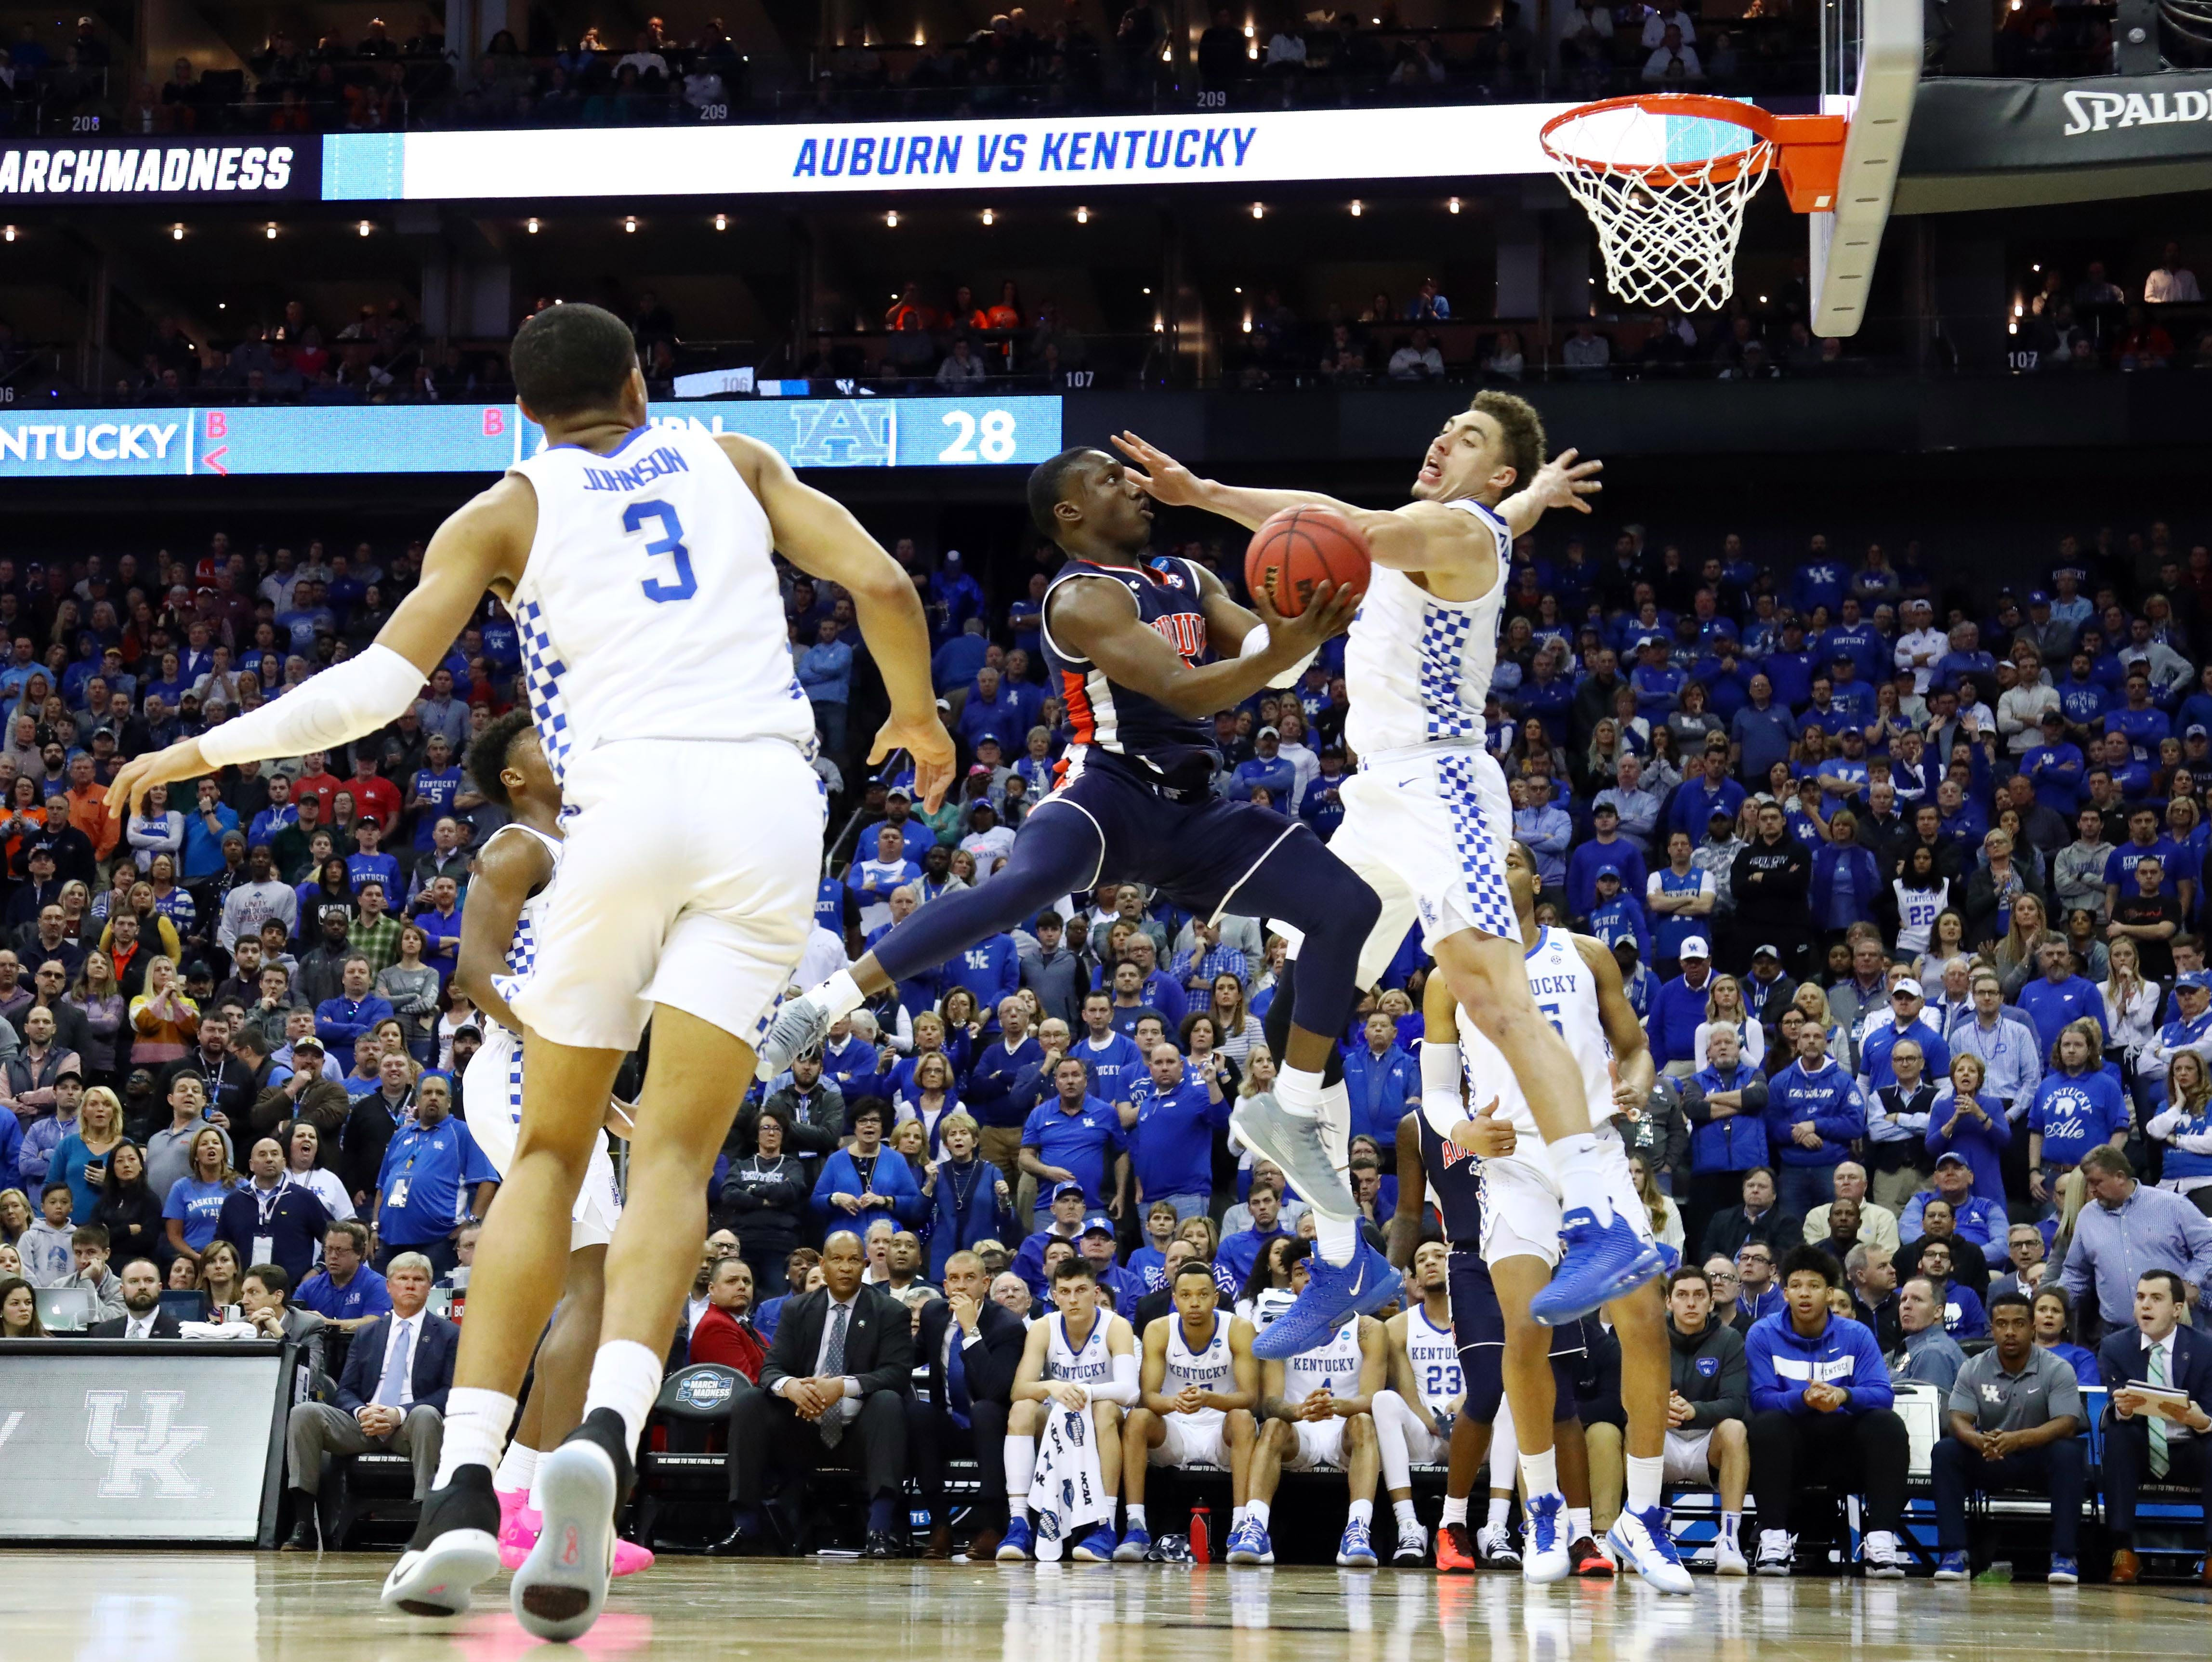 Mar 31, 2019; Kansas City, MO, United States; Auburn Tigers guard Jared Harper (1) shoots against Kentucky Wildcats forward Reid Travis (22) during the first half in the championship game of the midwest regional of the 2019 NCAA Tournament at Sprint Center. Mandatory Credit: Jay Biggerstaff-USA TODAY Sports